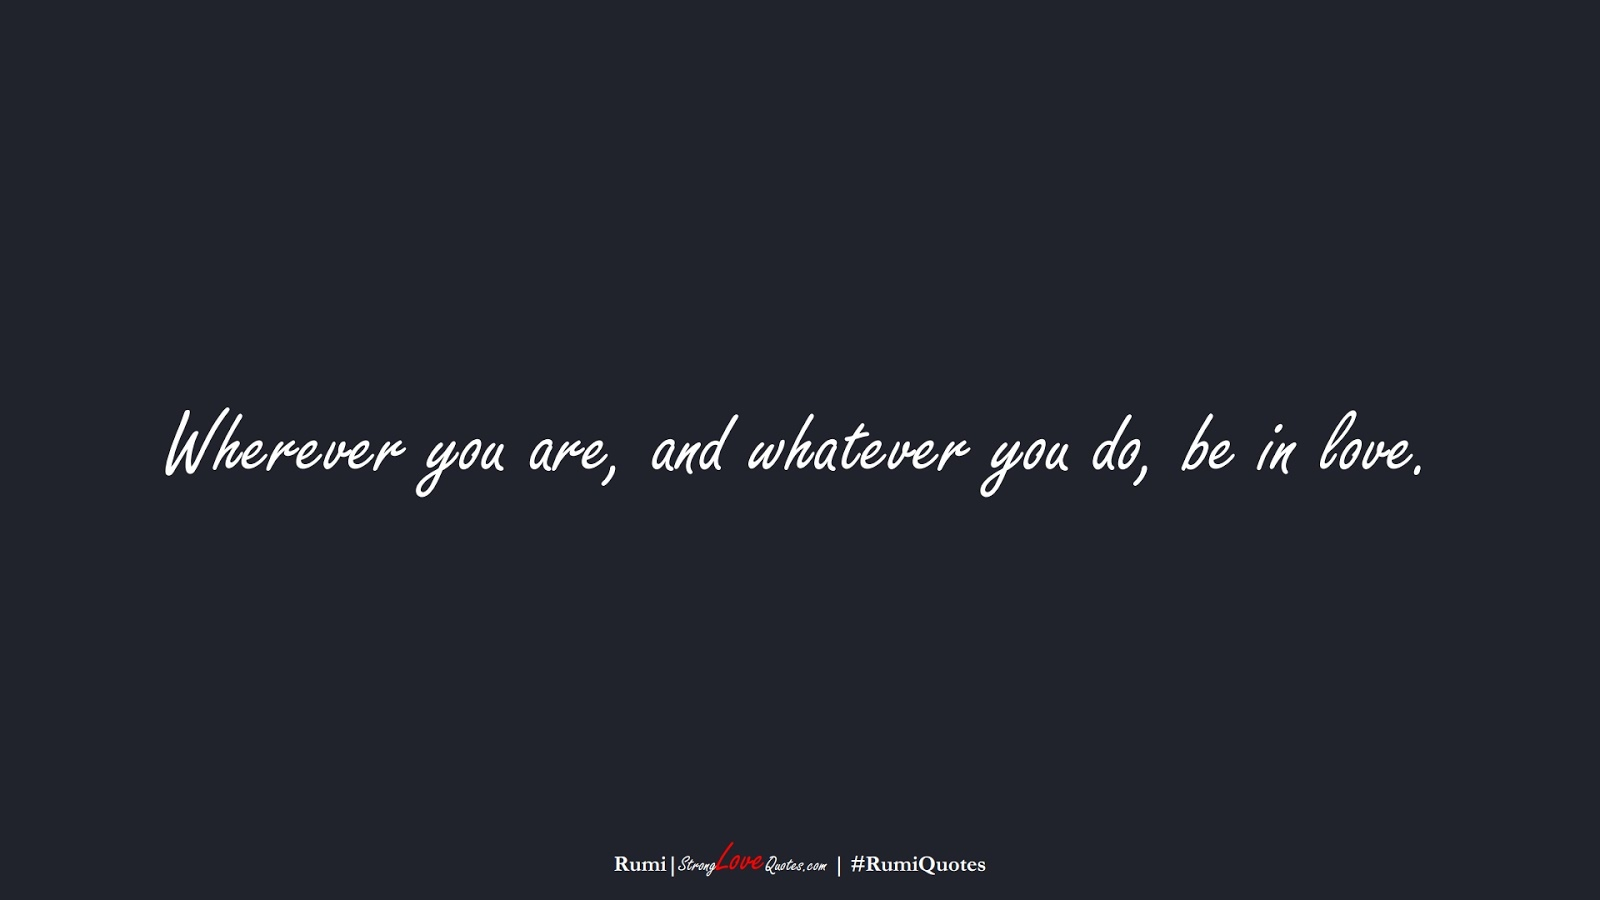 Wherever you are, and whatever you do, be in love. (Rumi);  #RumiQuotes